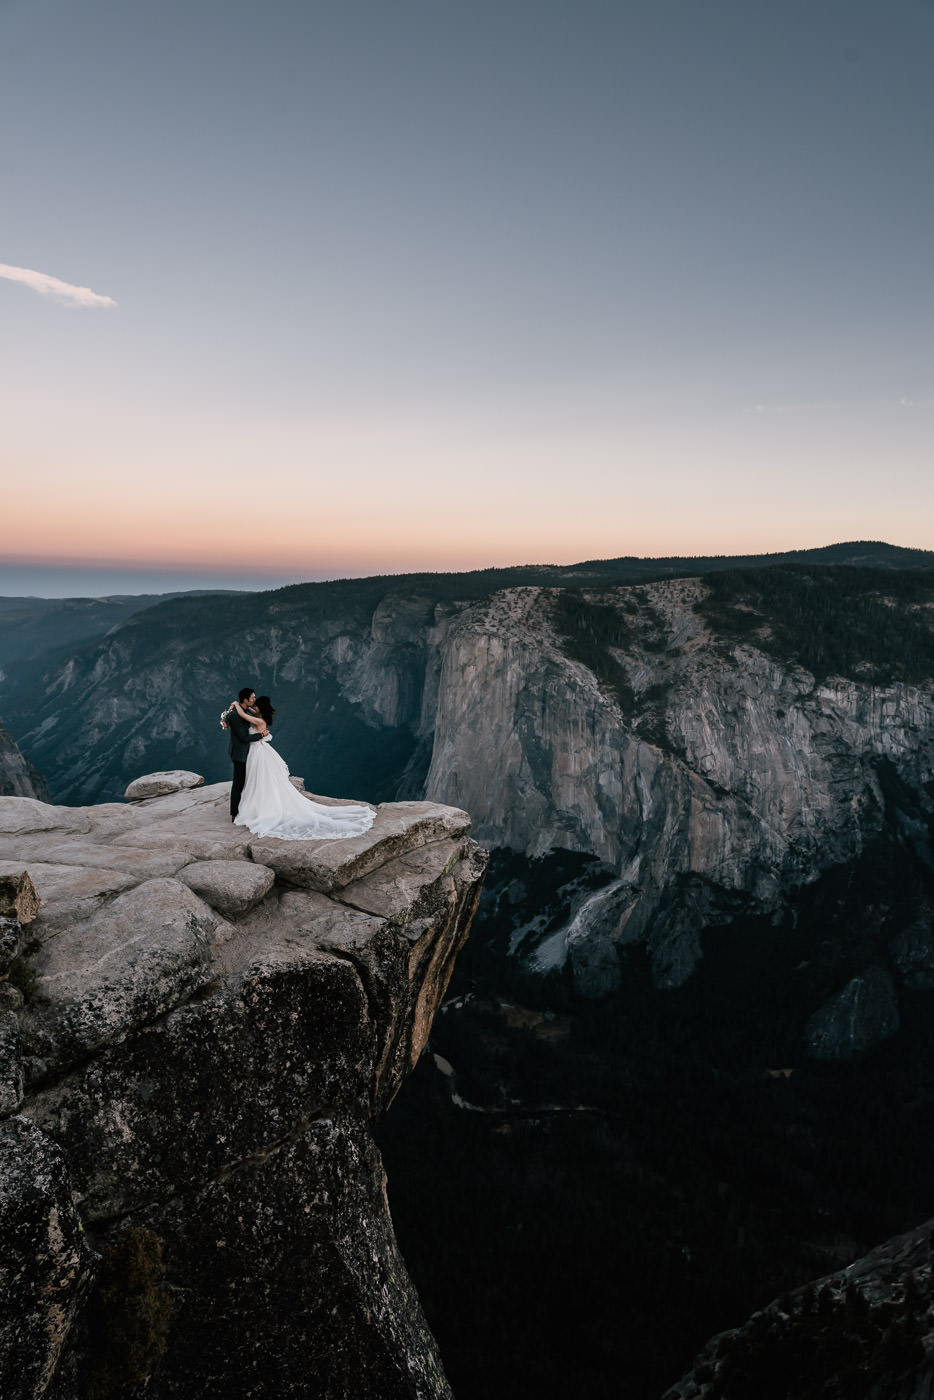 Eloping couple stands on the ledge of the Yosemite valley for an unforgettable wedding photo.